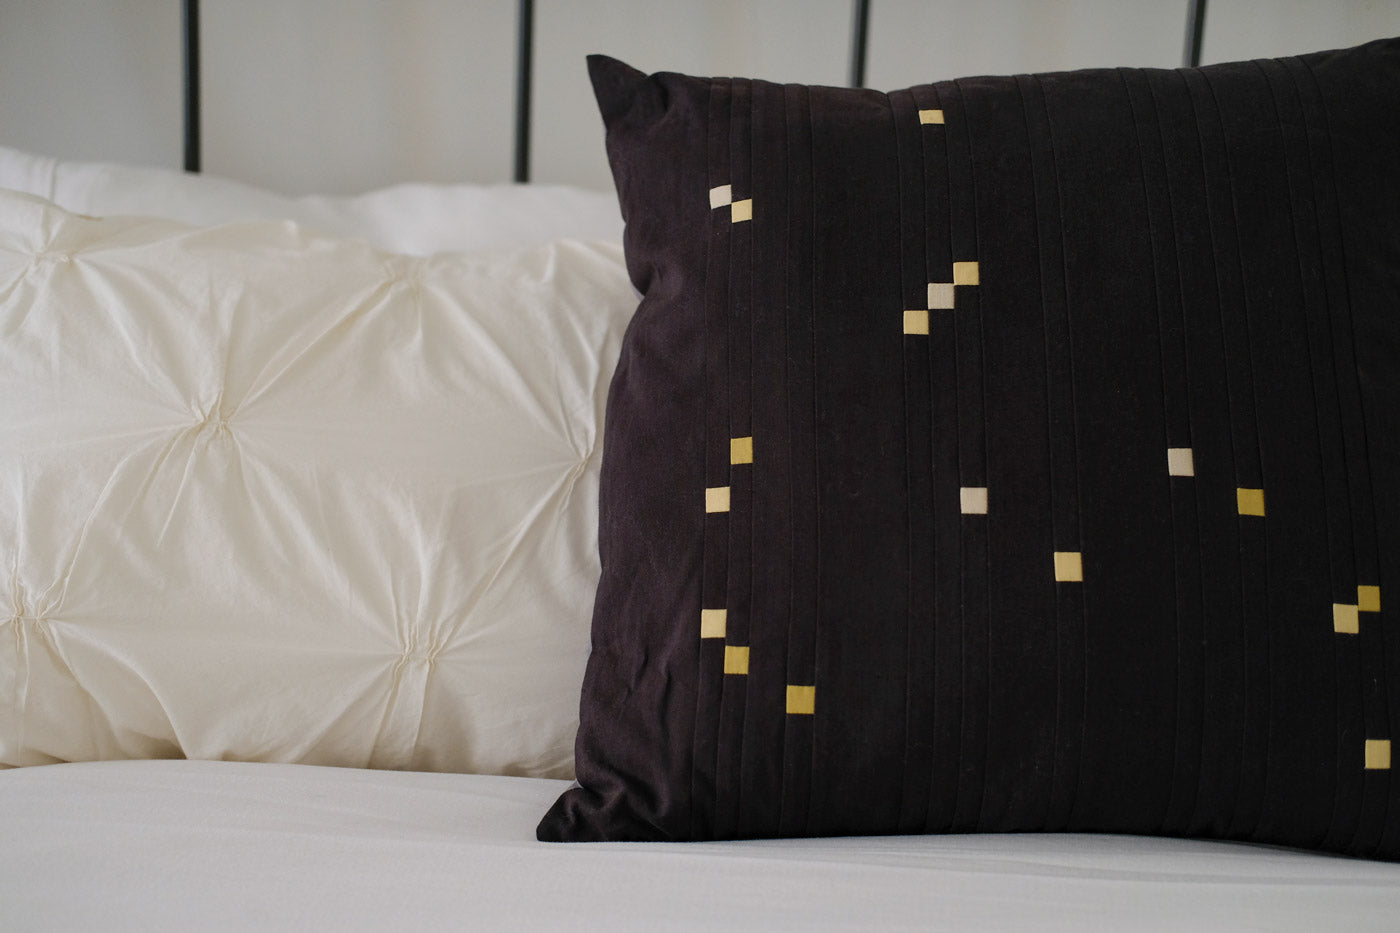 Constellations Book Orion quilted pillow sitting on a white bed